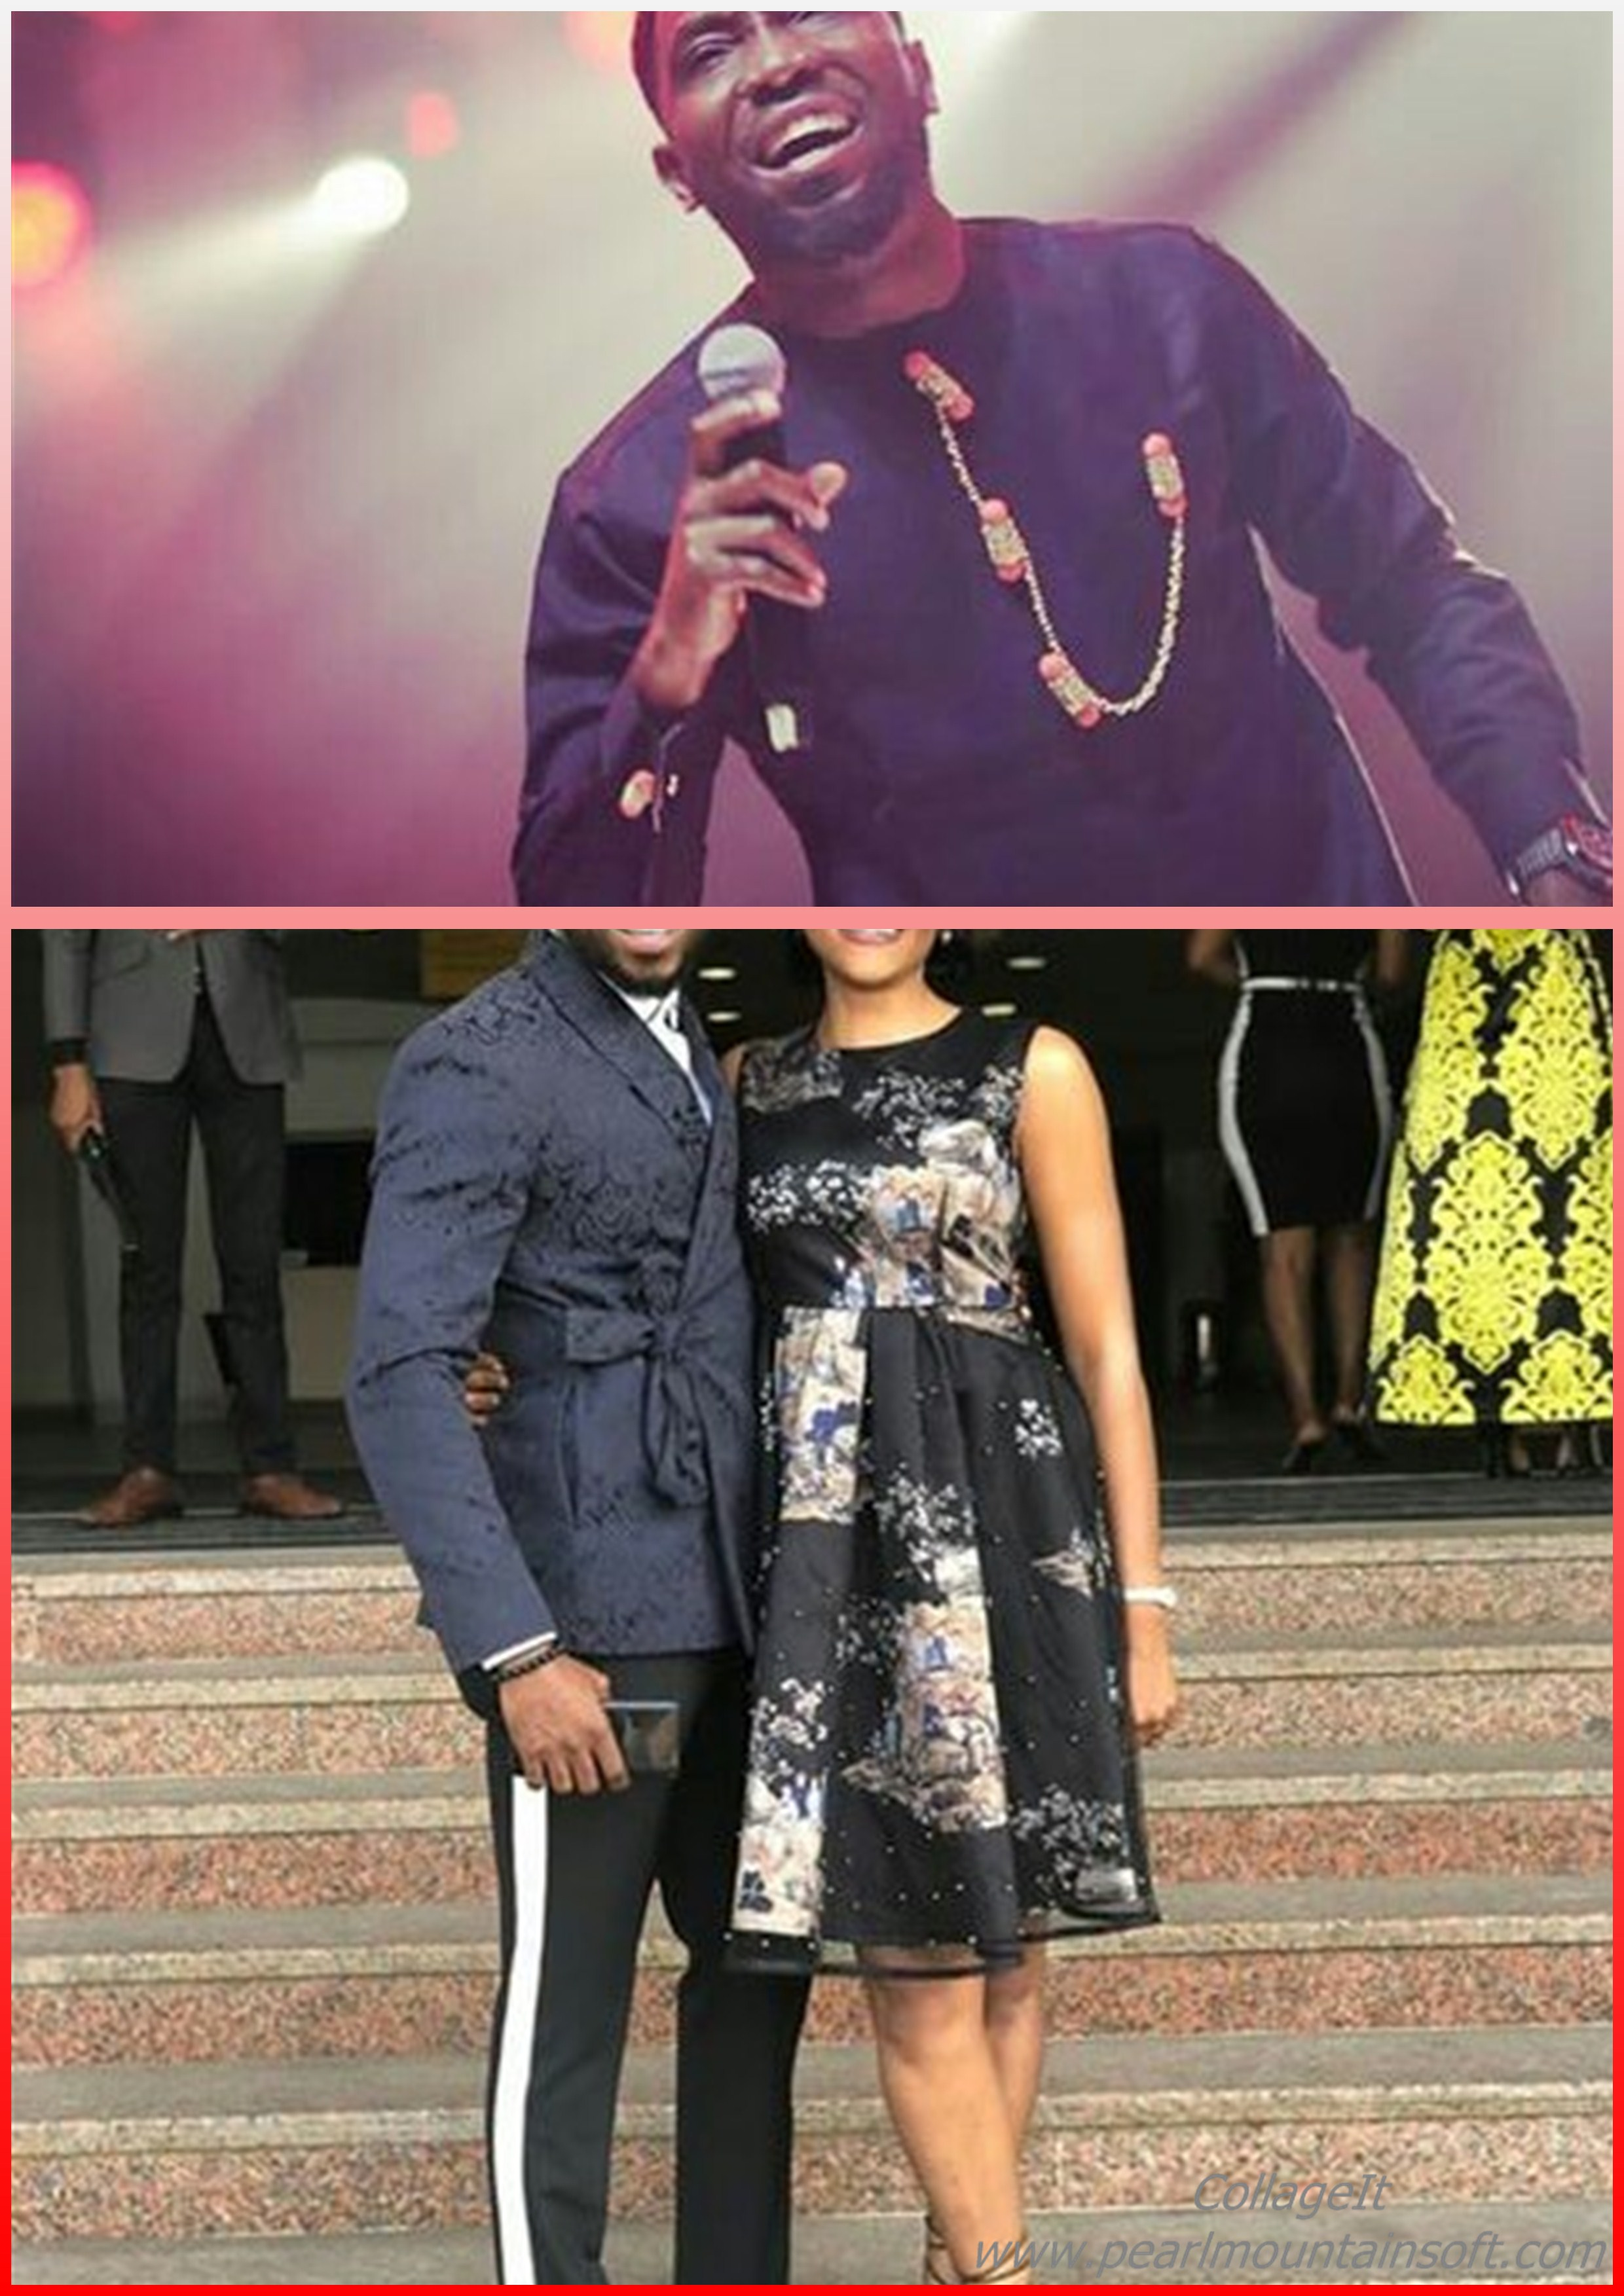 TIMI DAKOLO CRYING AFTER THIS HAPPENED TO HIM…